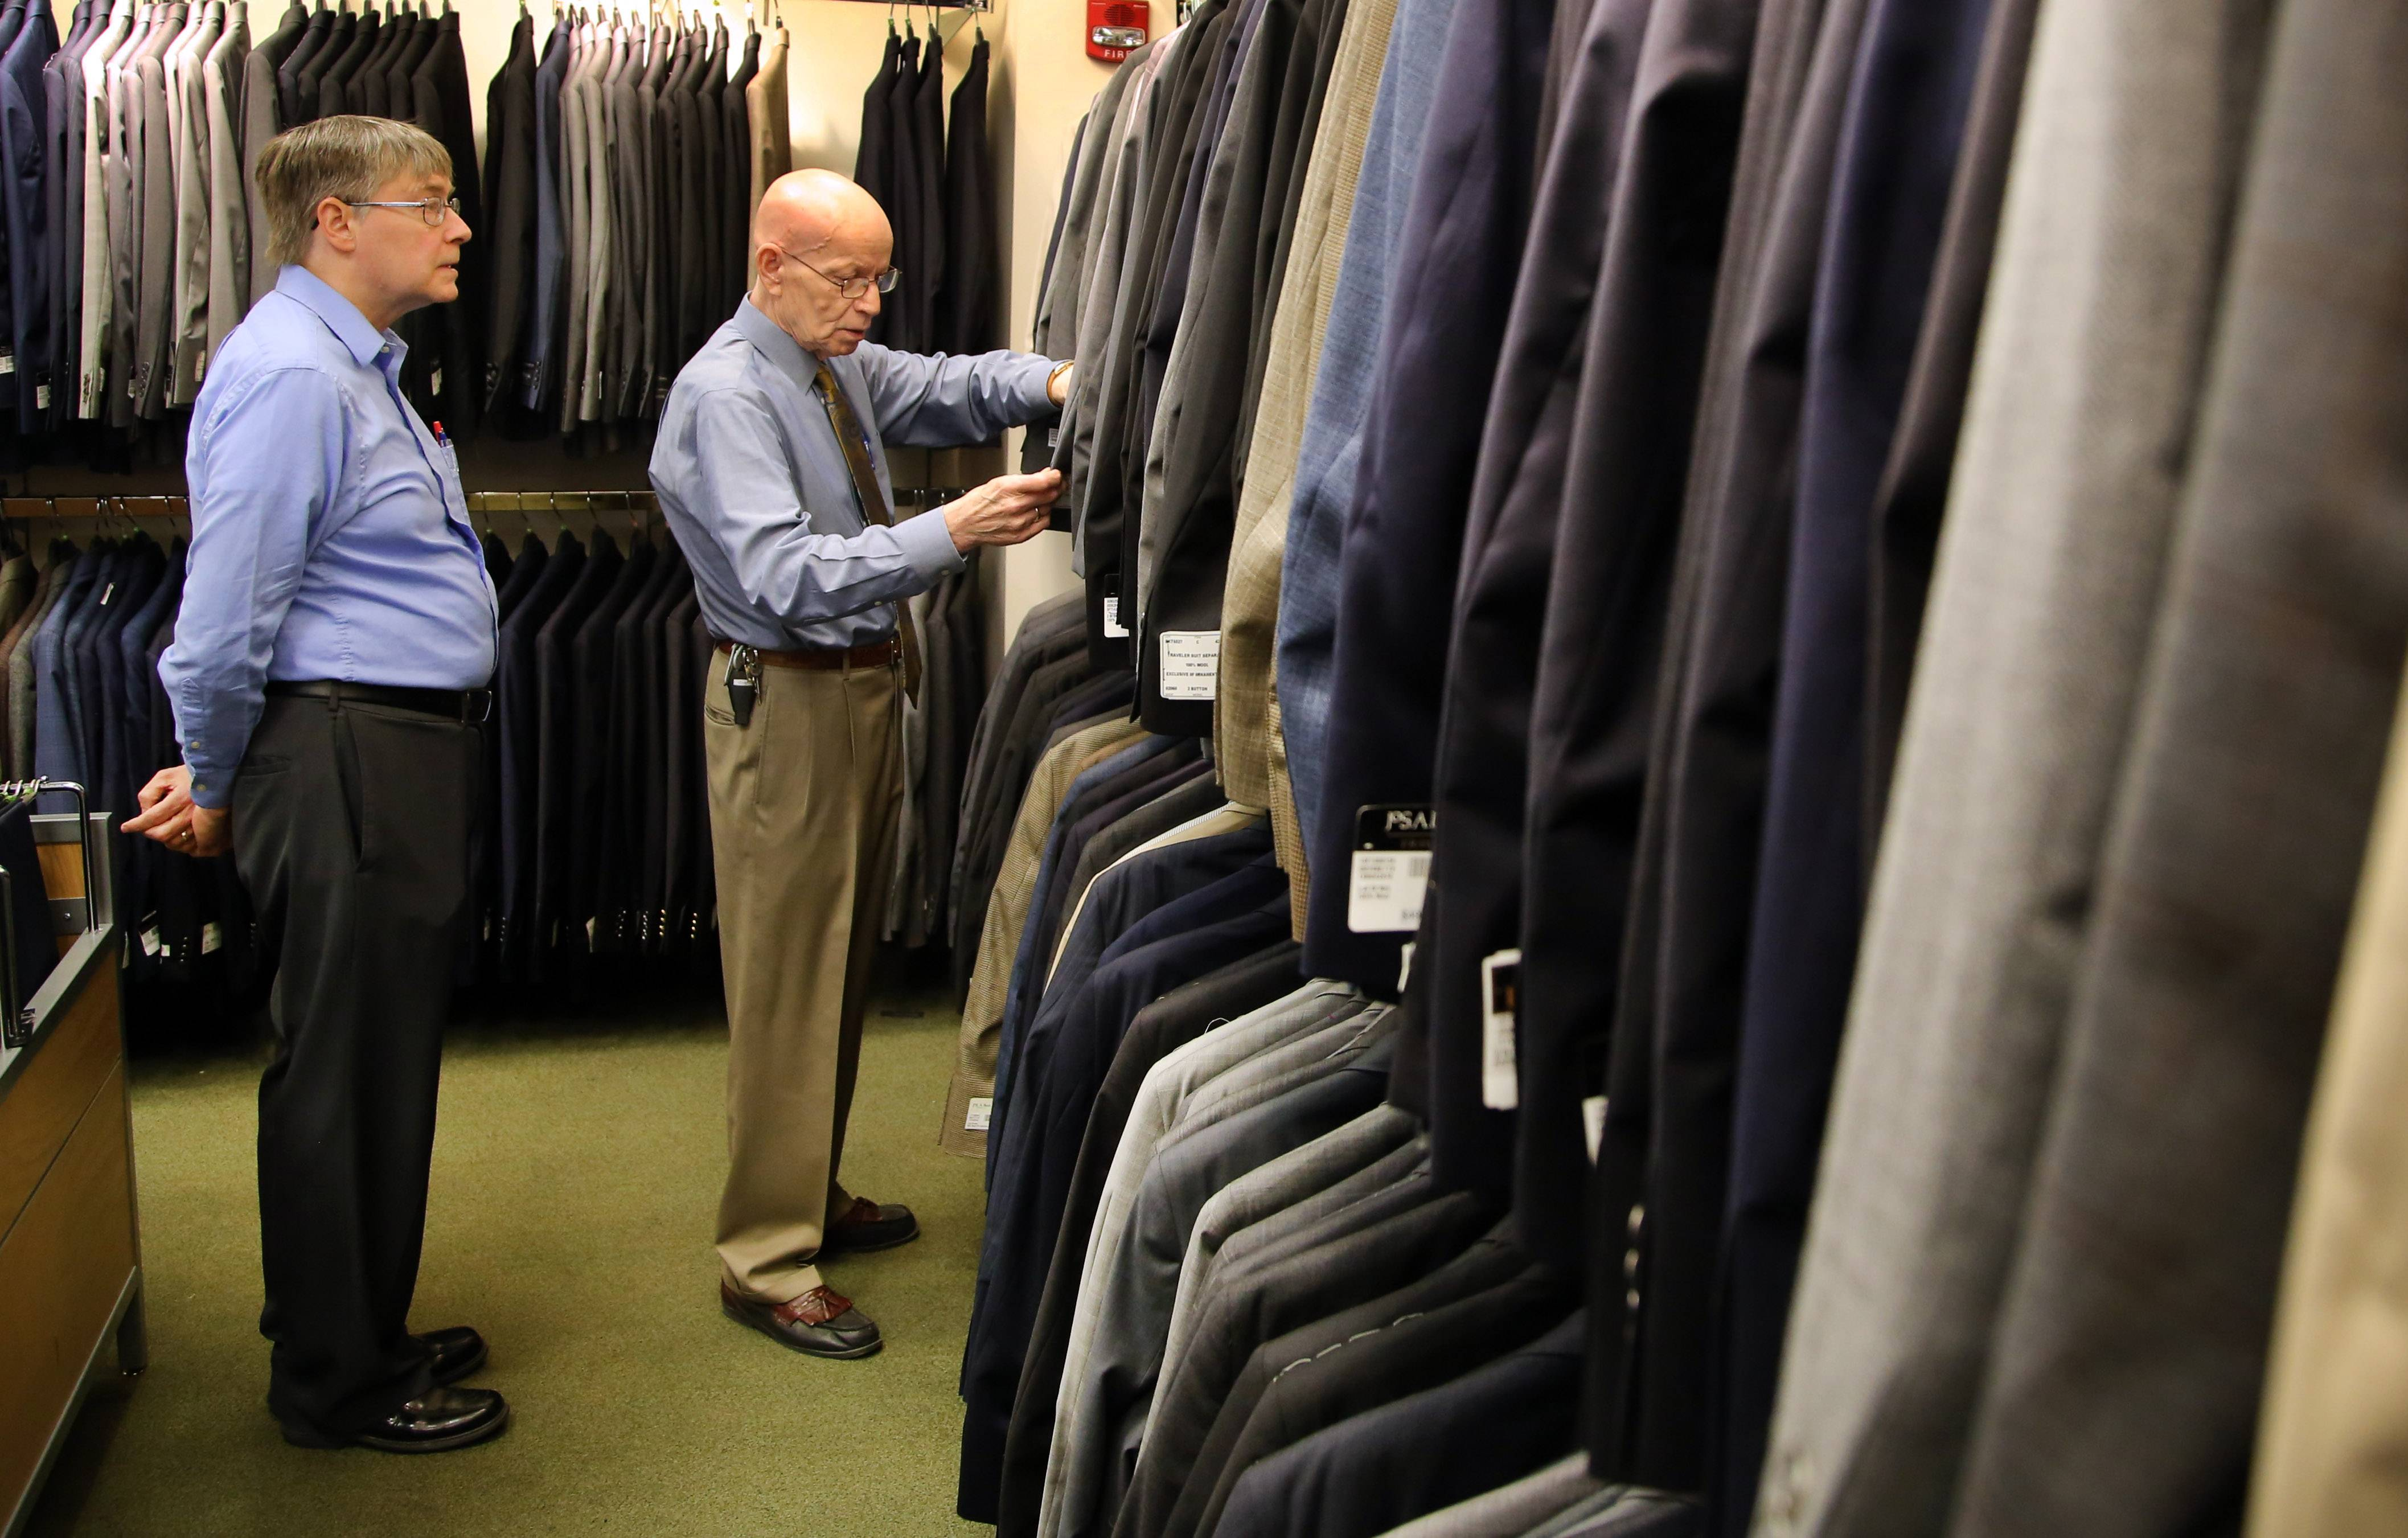 Fittest Loser correspondent Dave Gathman of Elgin, left, looks through suits with sales person Dennis Carnehl at Jos. A. Bank in Deer Park Town Center in preparation for the Fittest Loser finale.